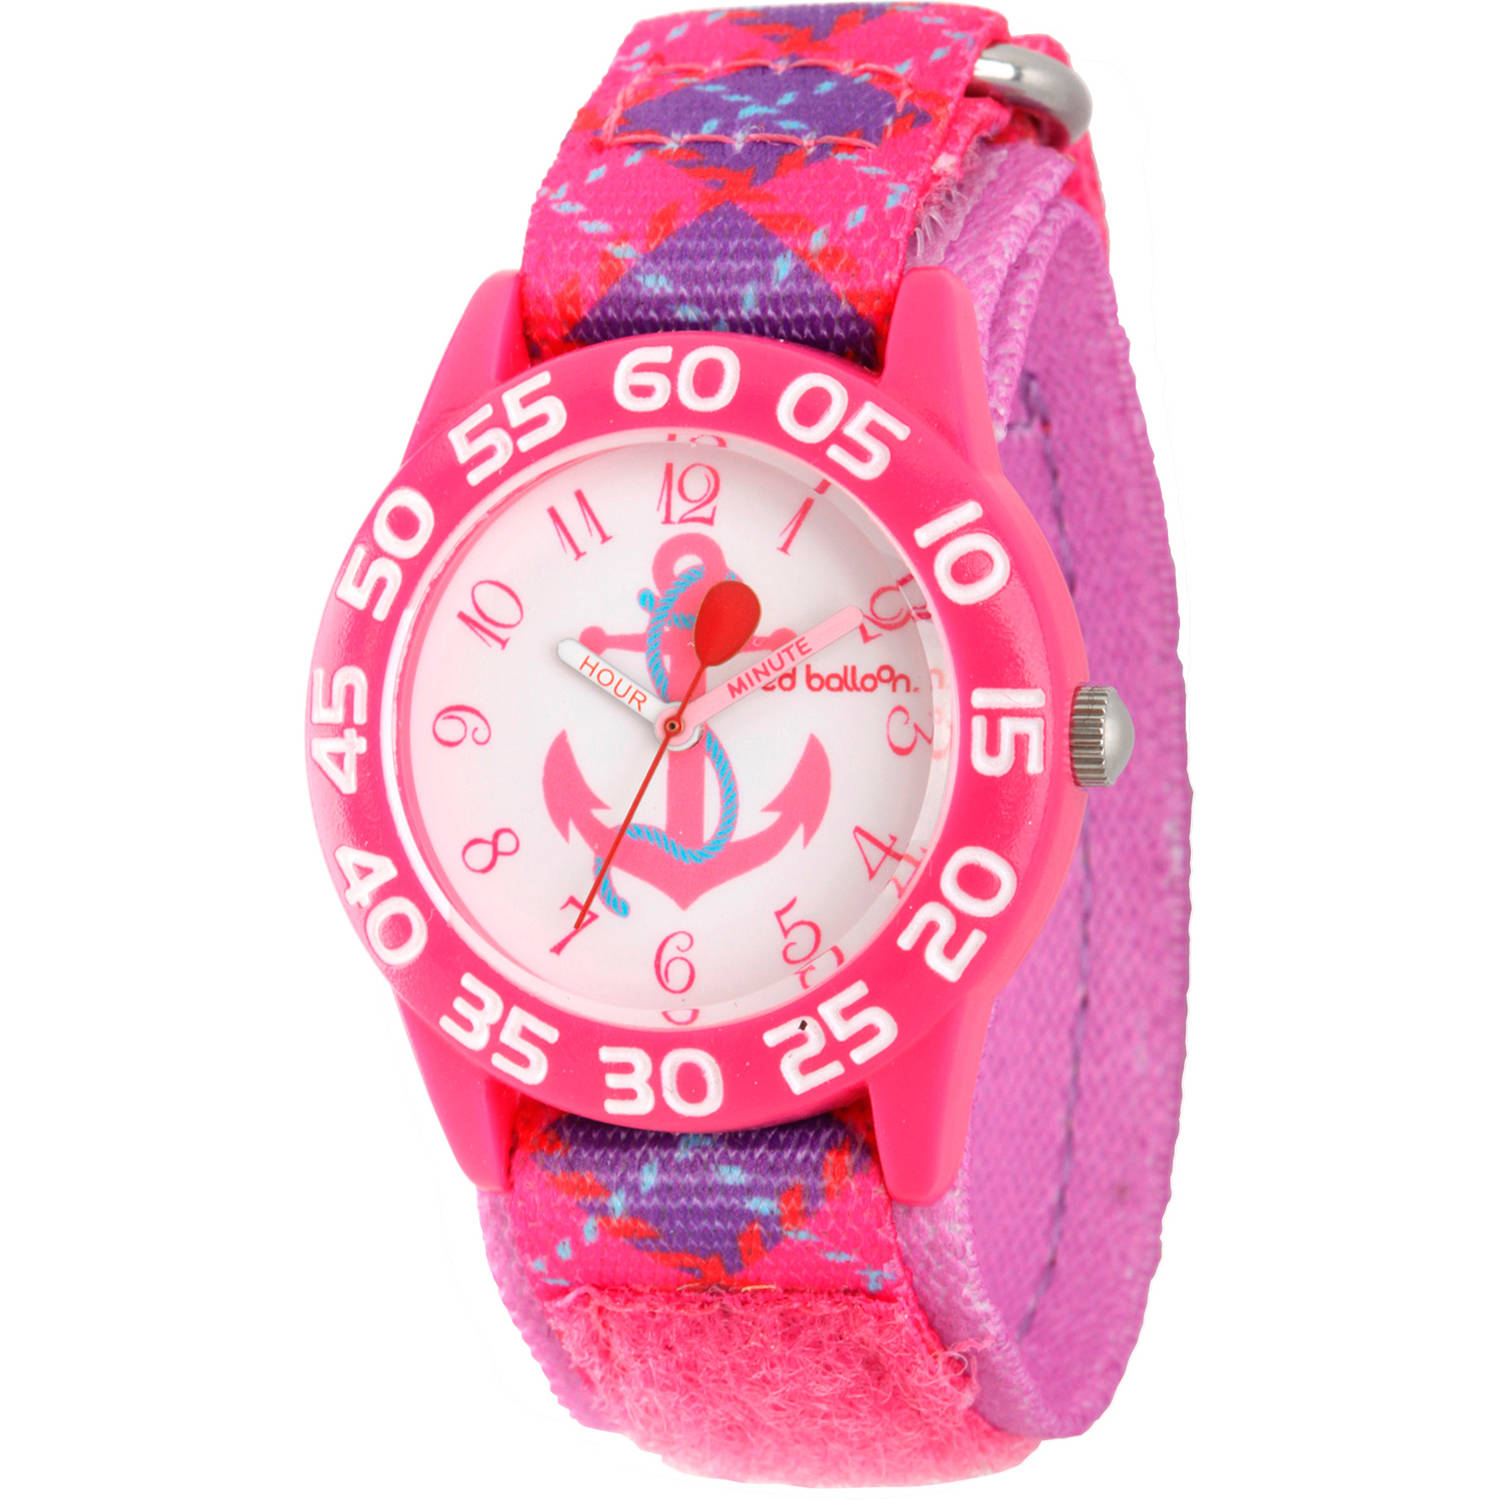 Red Balloon Girls' Pink Plastic Time Teacher Watch, Printed Pink and Purple Nylon Strap